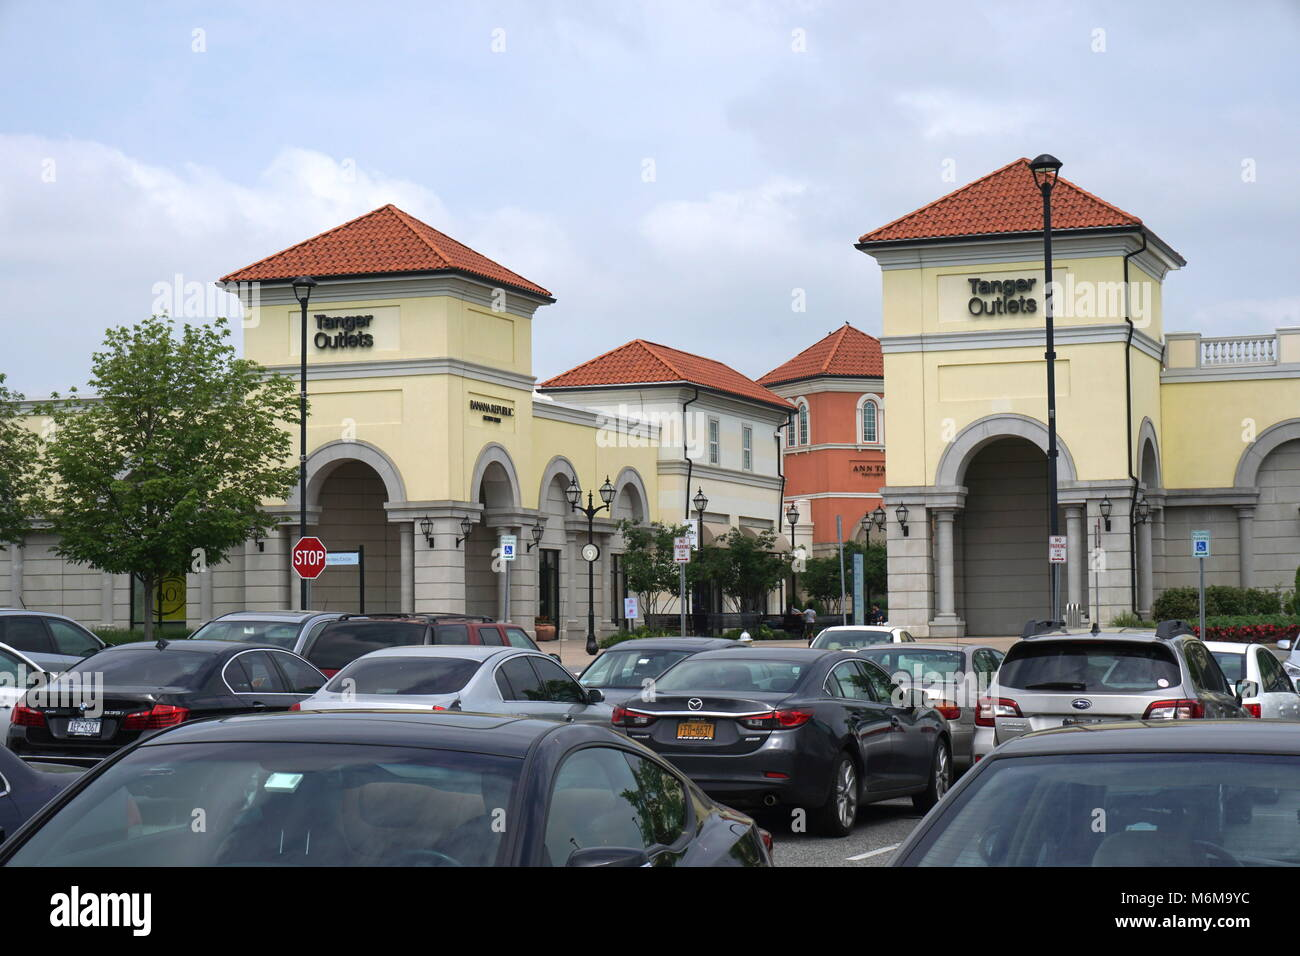 5a1ffec9af7 Tanger Outlet Mall Photos   Tanger Outlet Mall Images - Alamy